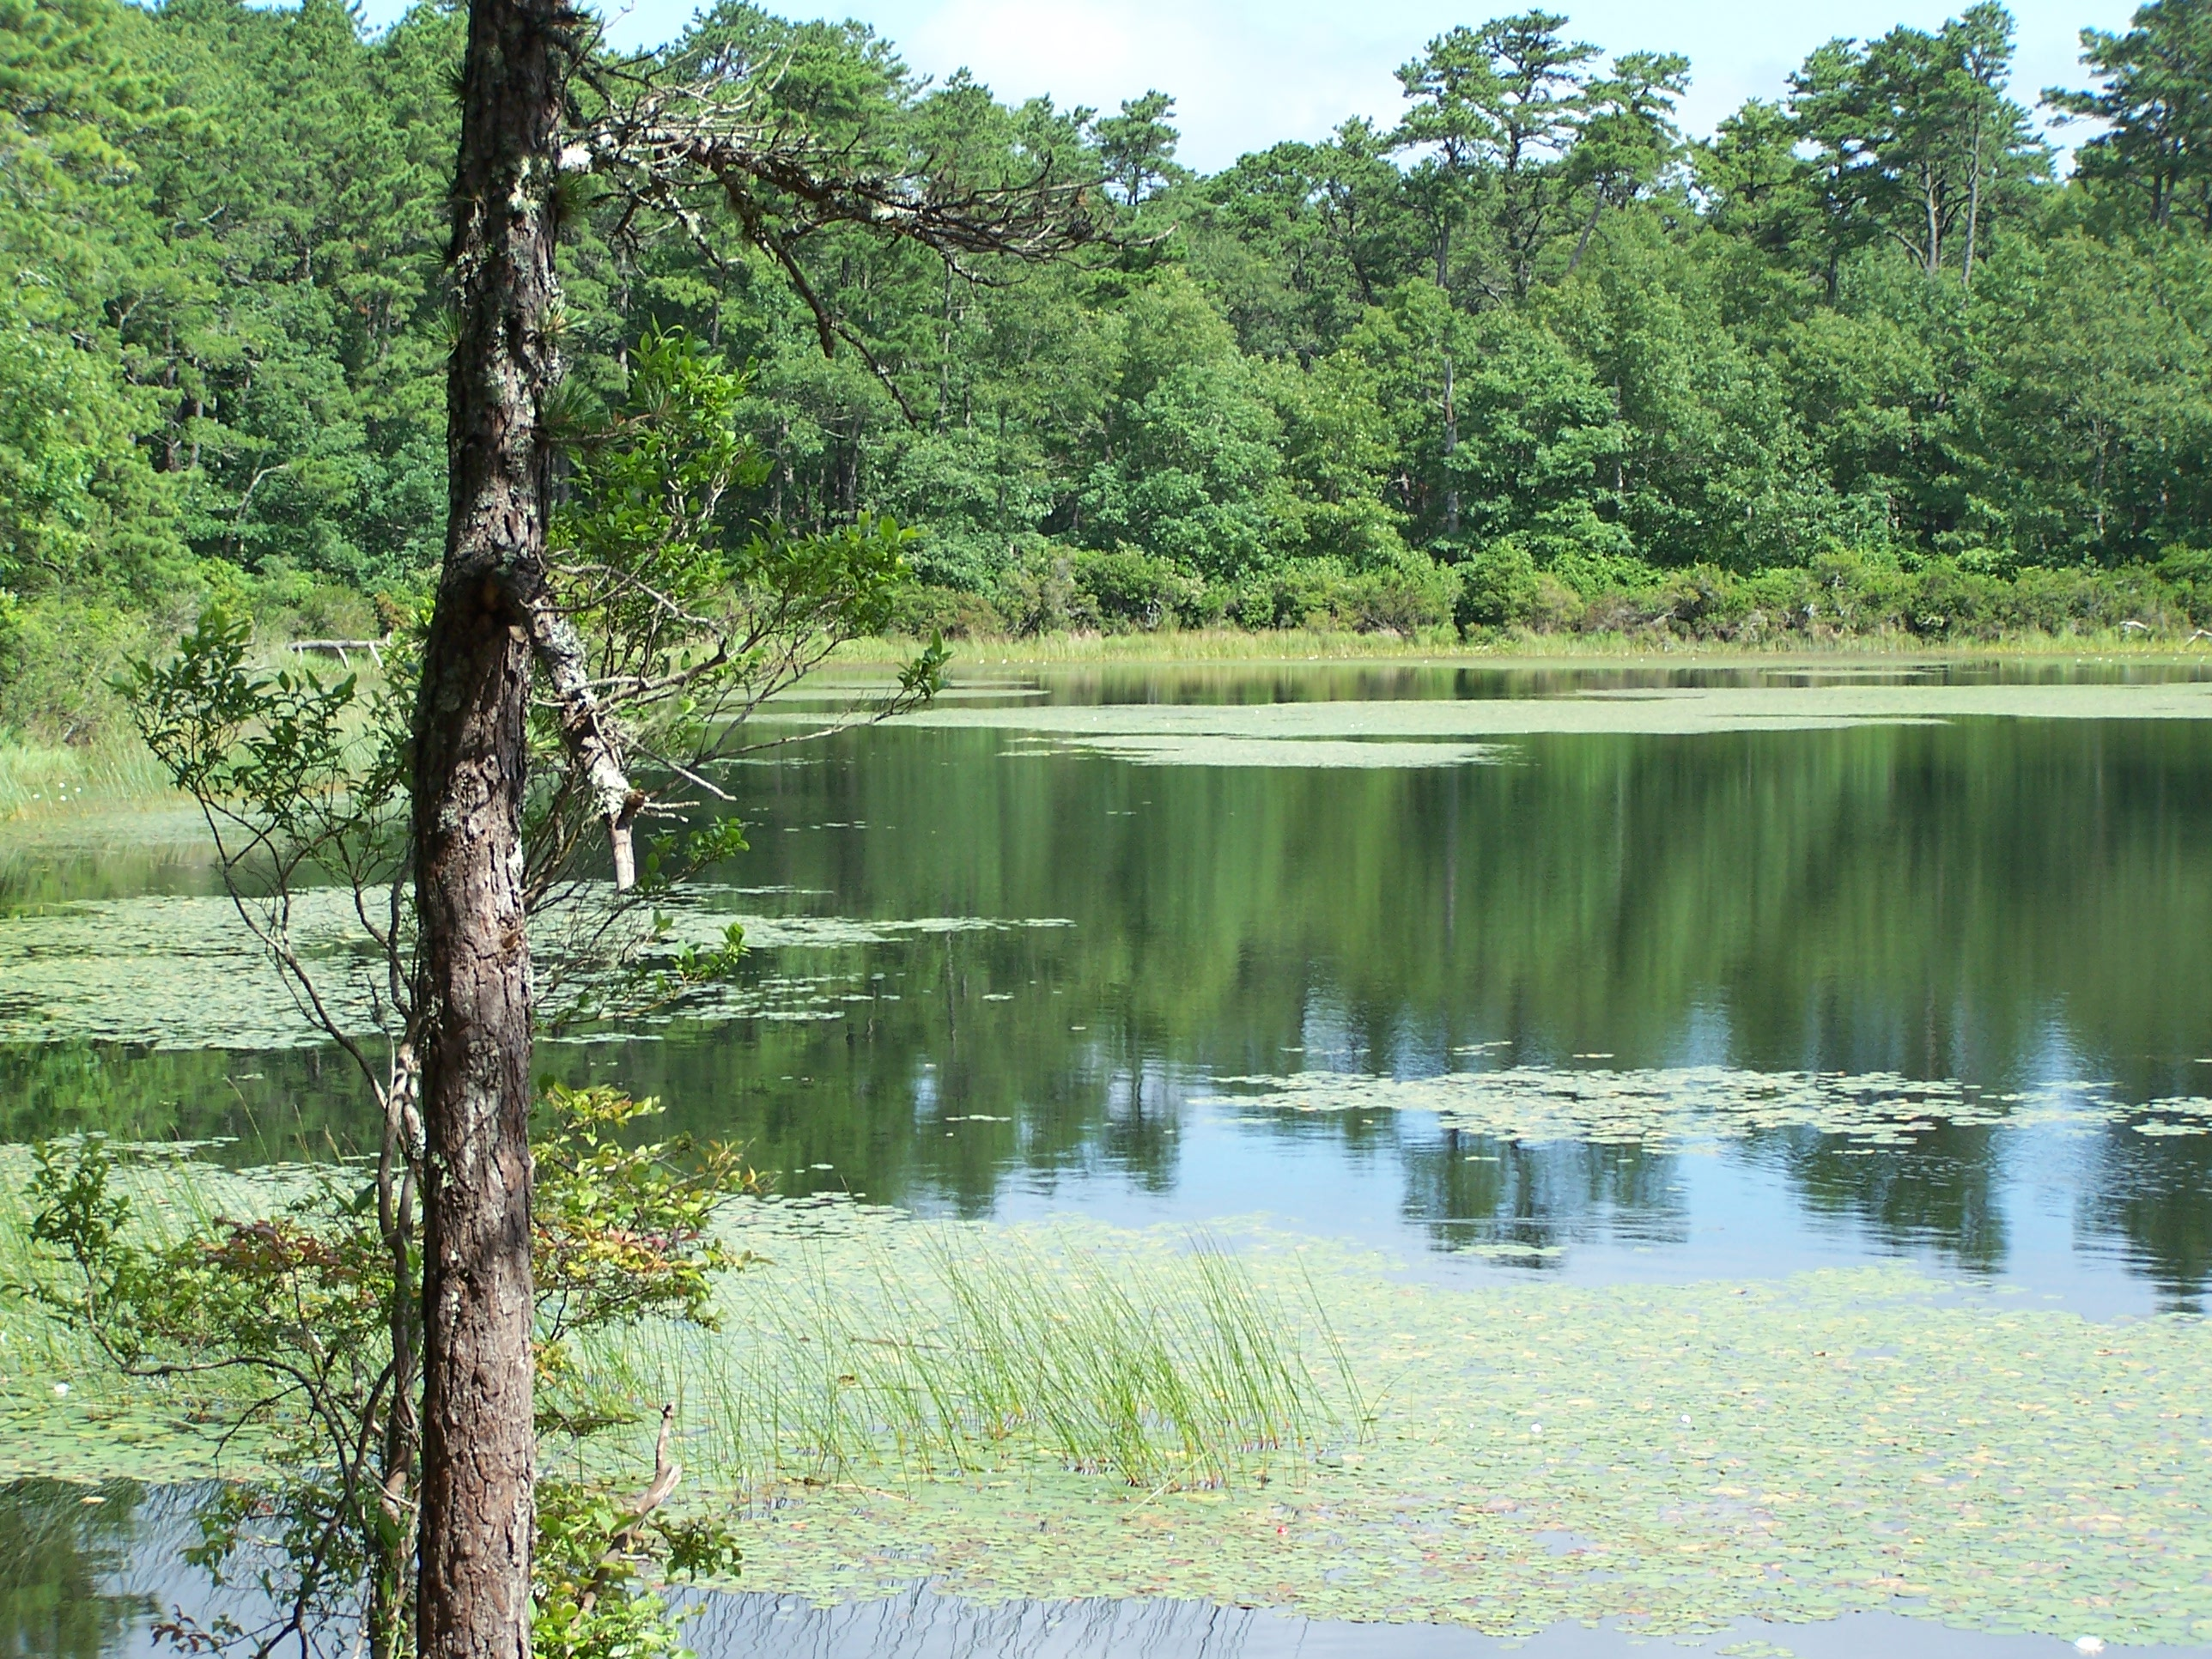 A kettle pond at Nickerson State Park in Brewster, MA